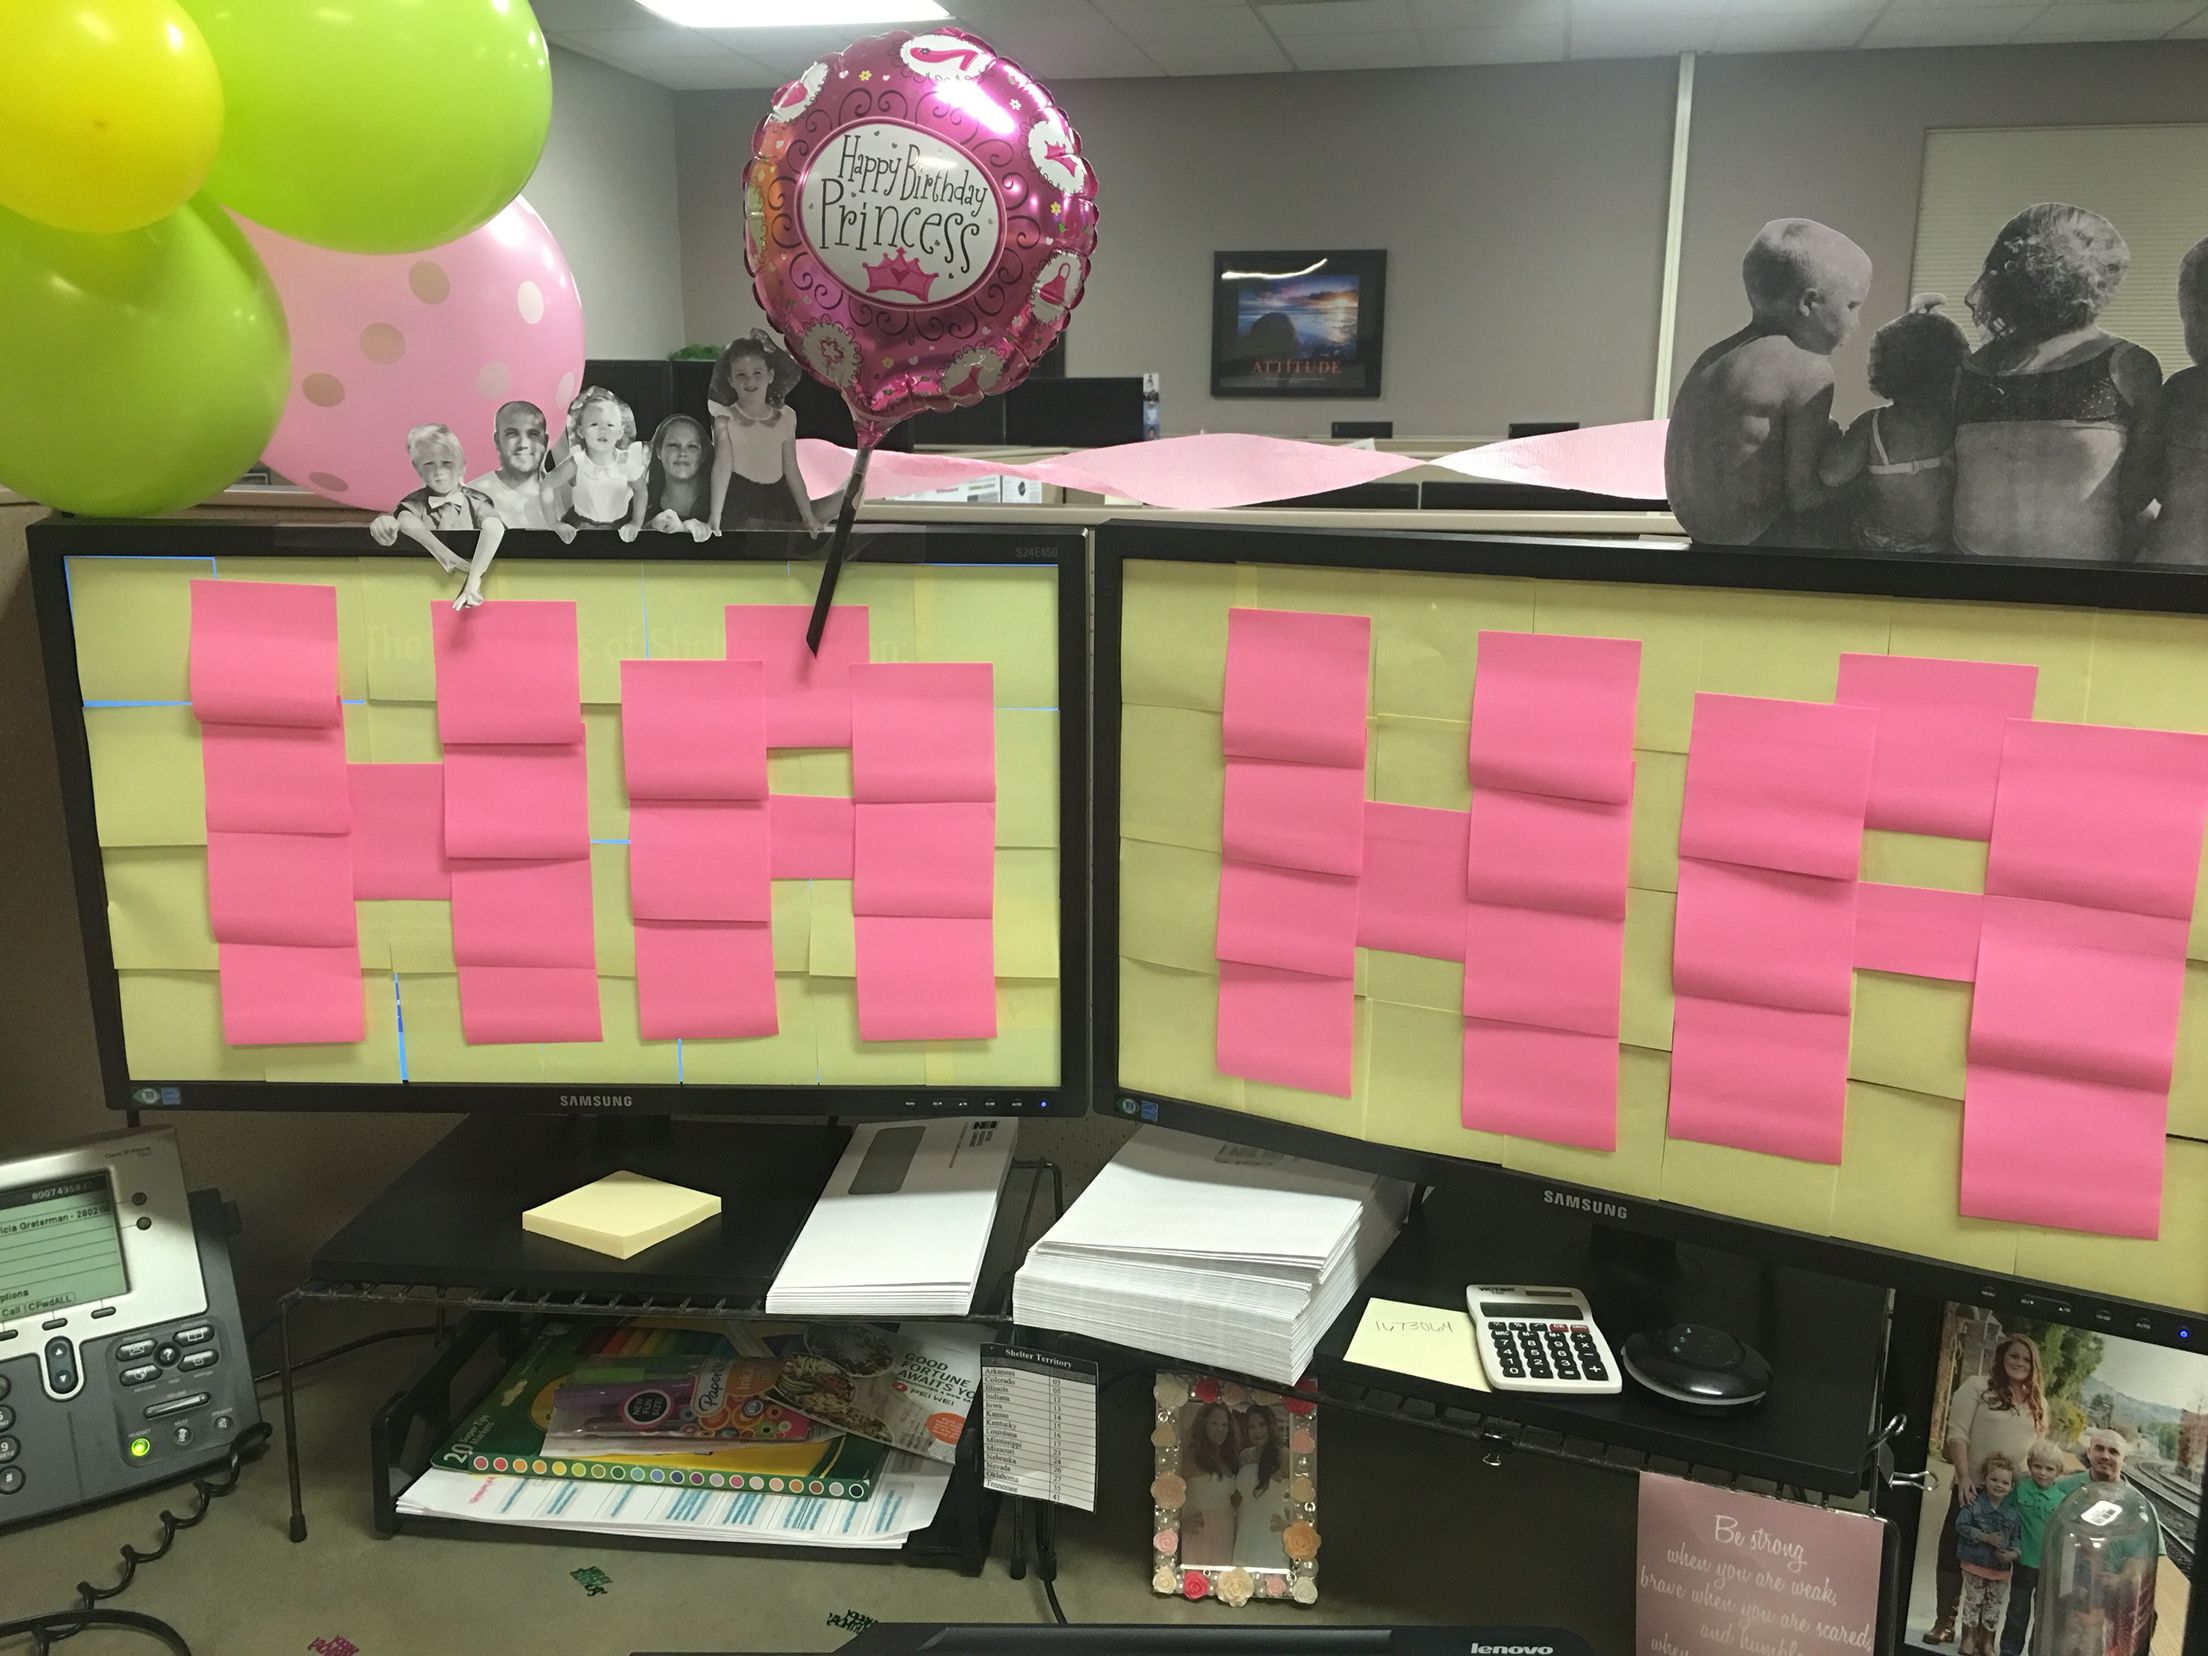 Work decoration birthday cubicle balloon sticky note Cubicle desk decorating ideas